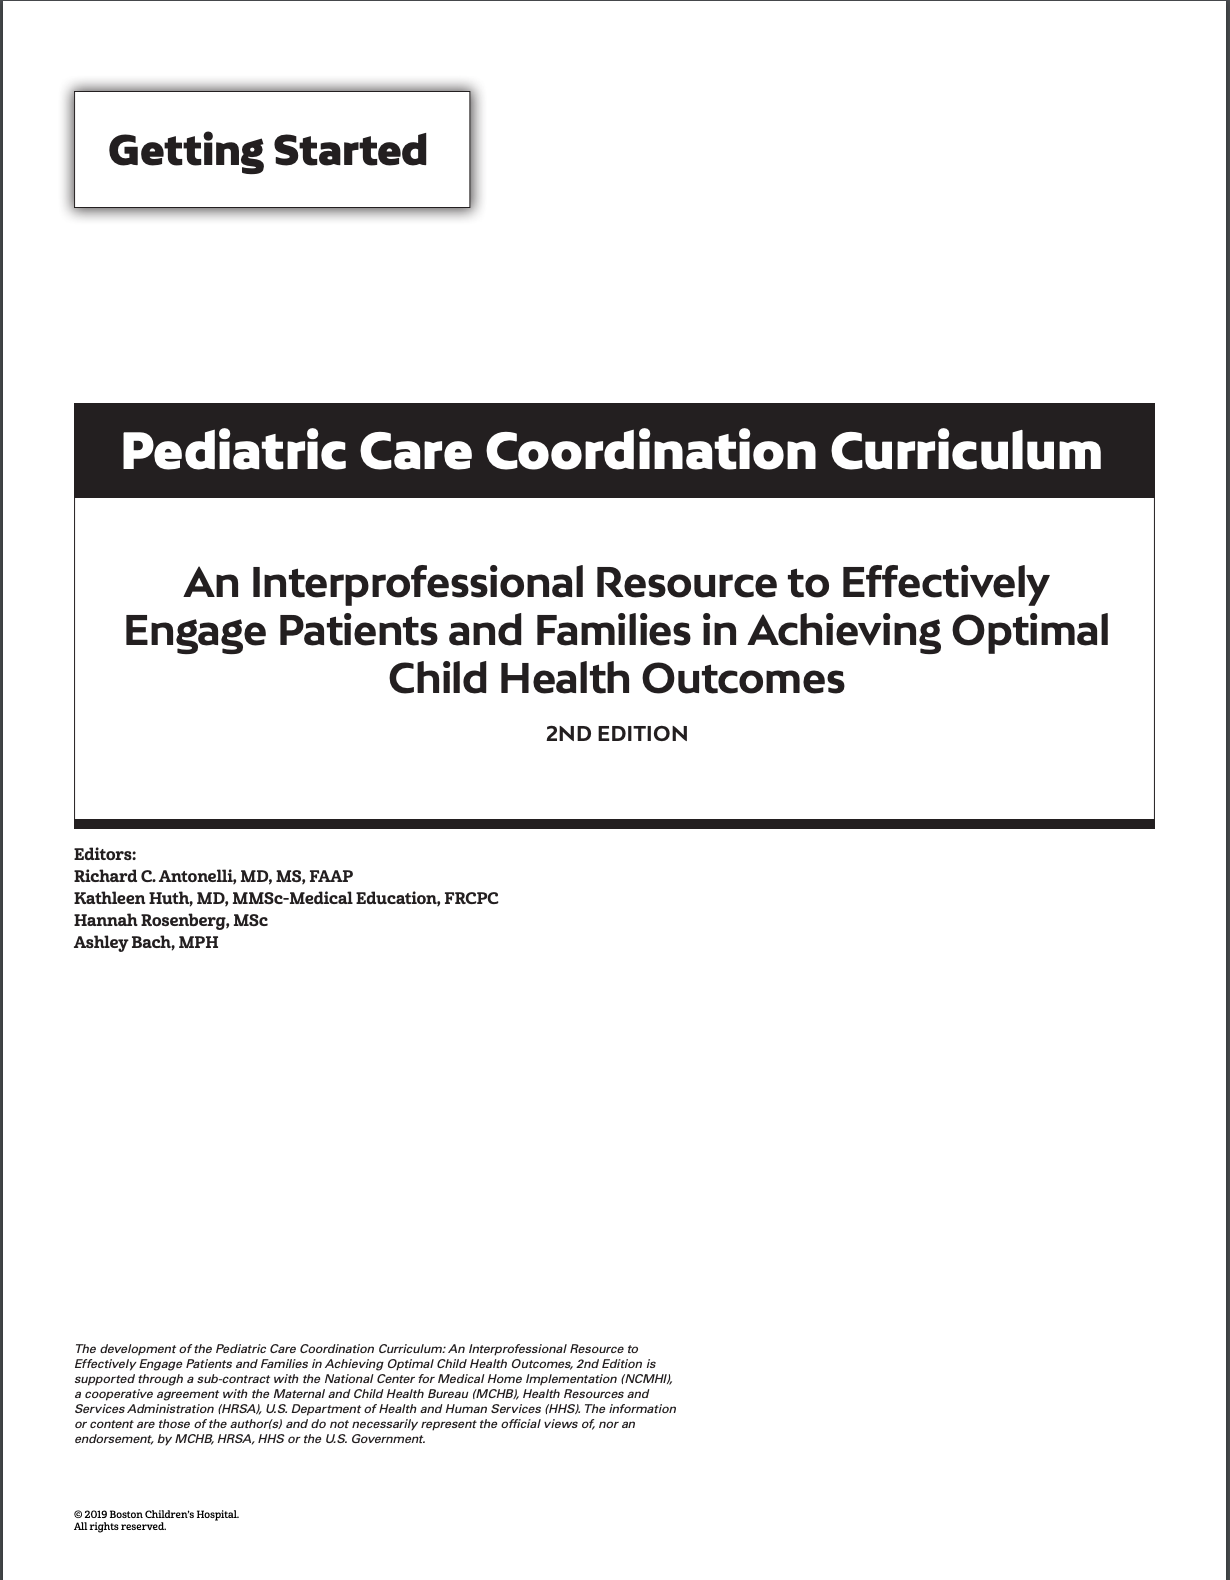 Pediatric Care Coordination 2nd Ed.png